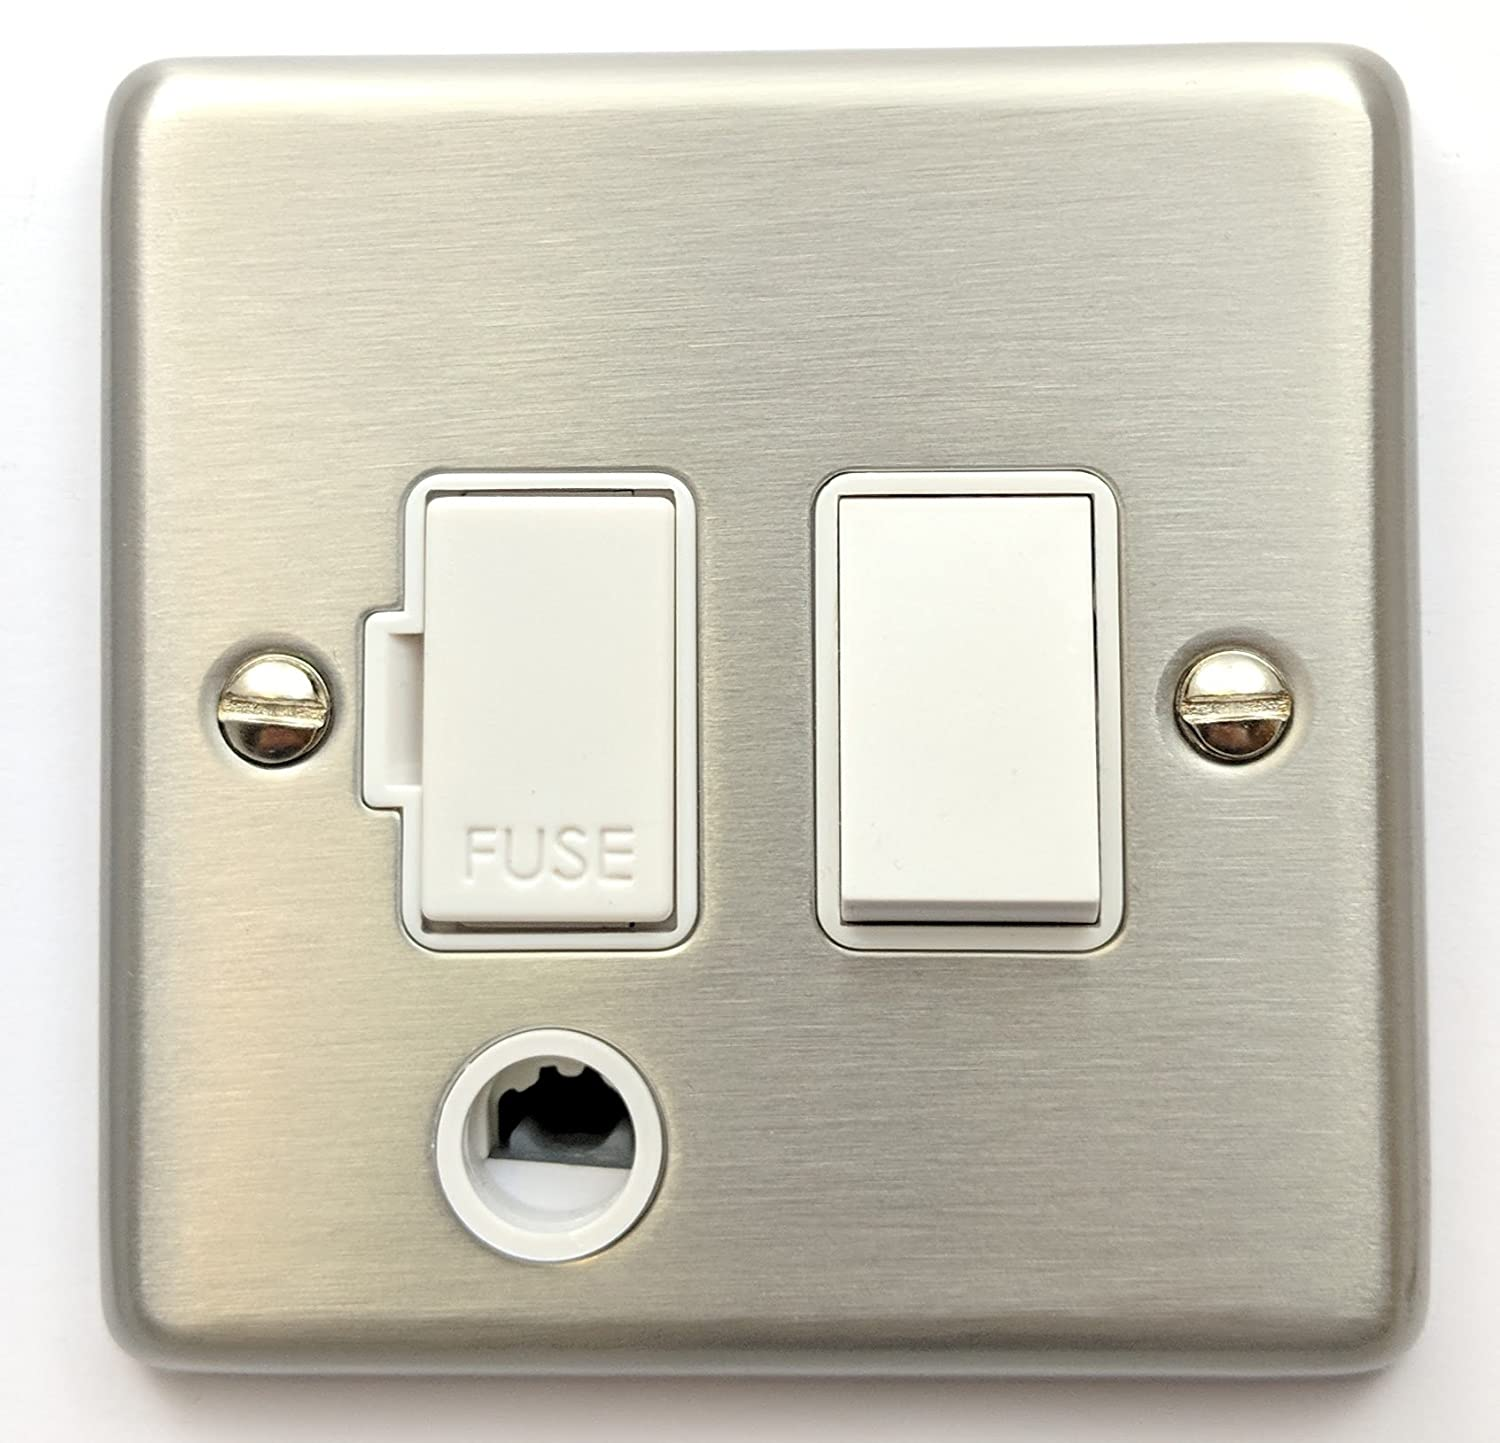 G&H CSS56W Standard Plate Brushed Steel 1 Gang Fused Spur 13A Switched & Flex Outlet G&H Brassware